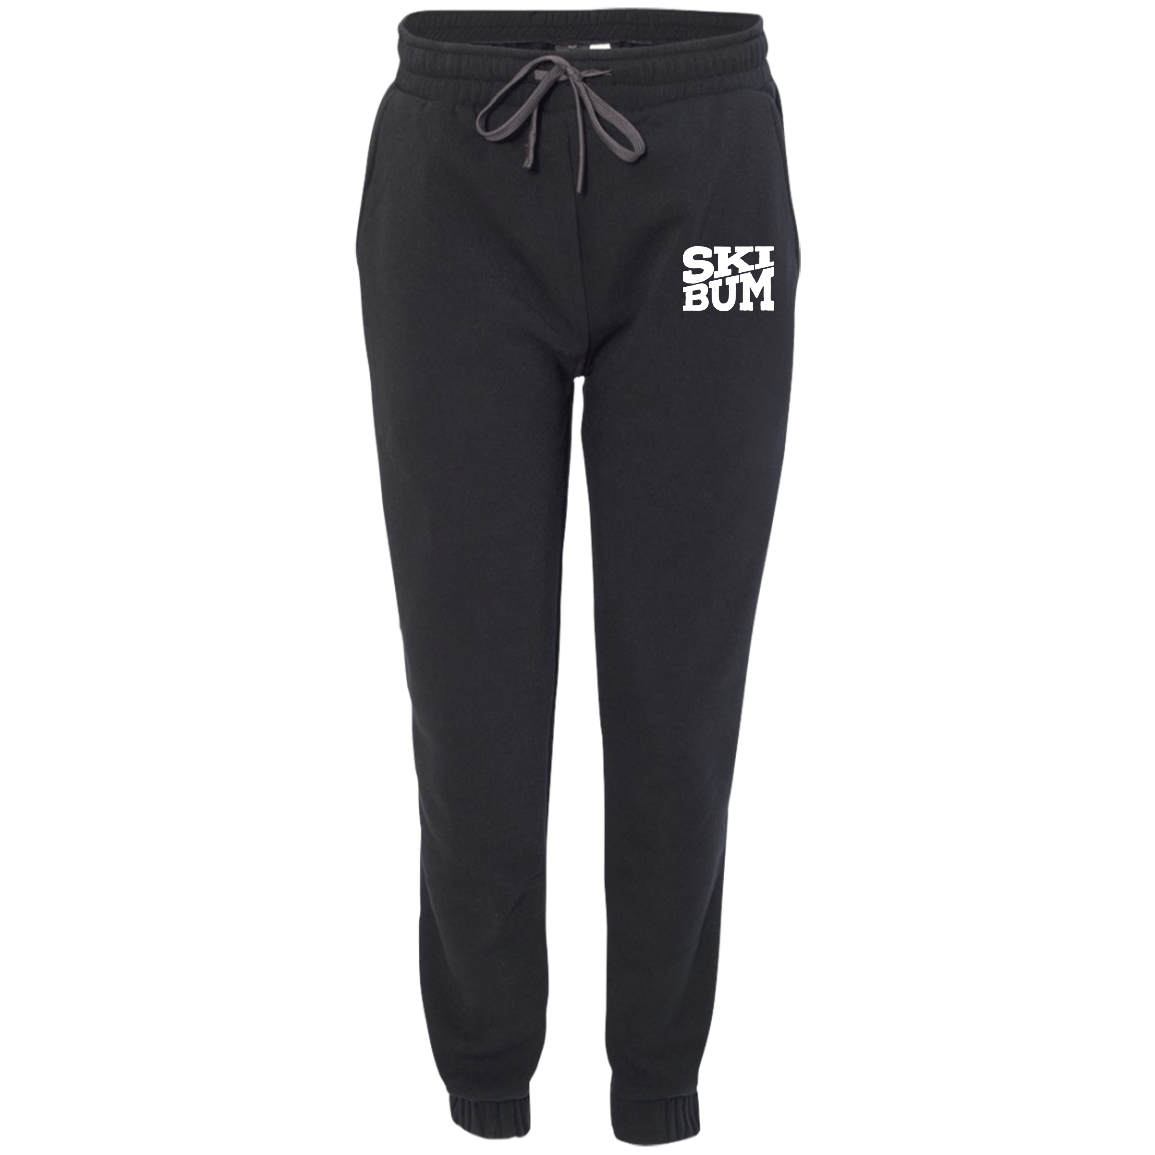 Ski Bum Men's Adult Fleece Joggers - Powderaddicts